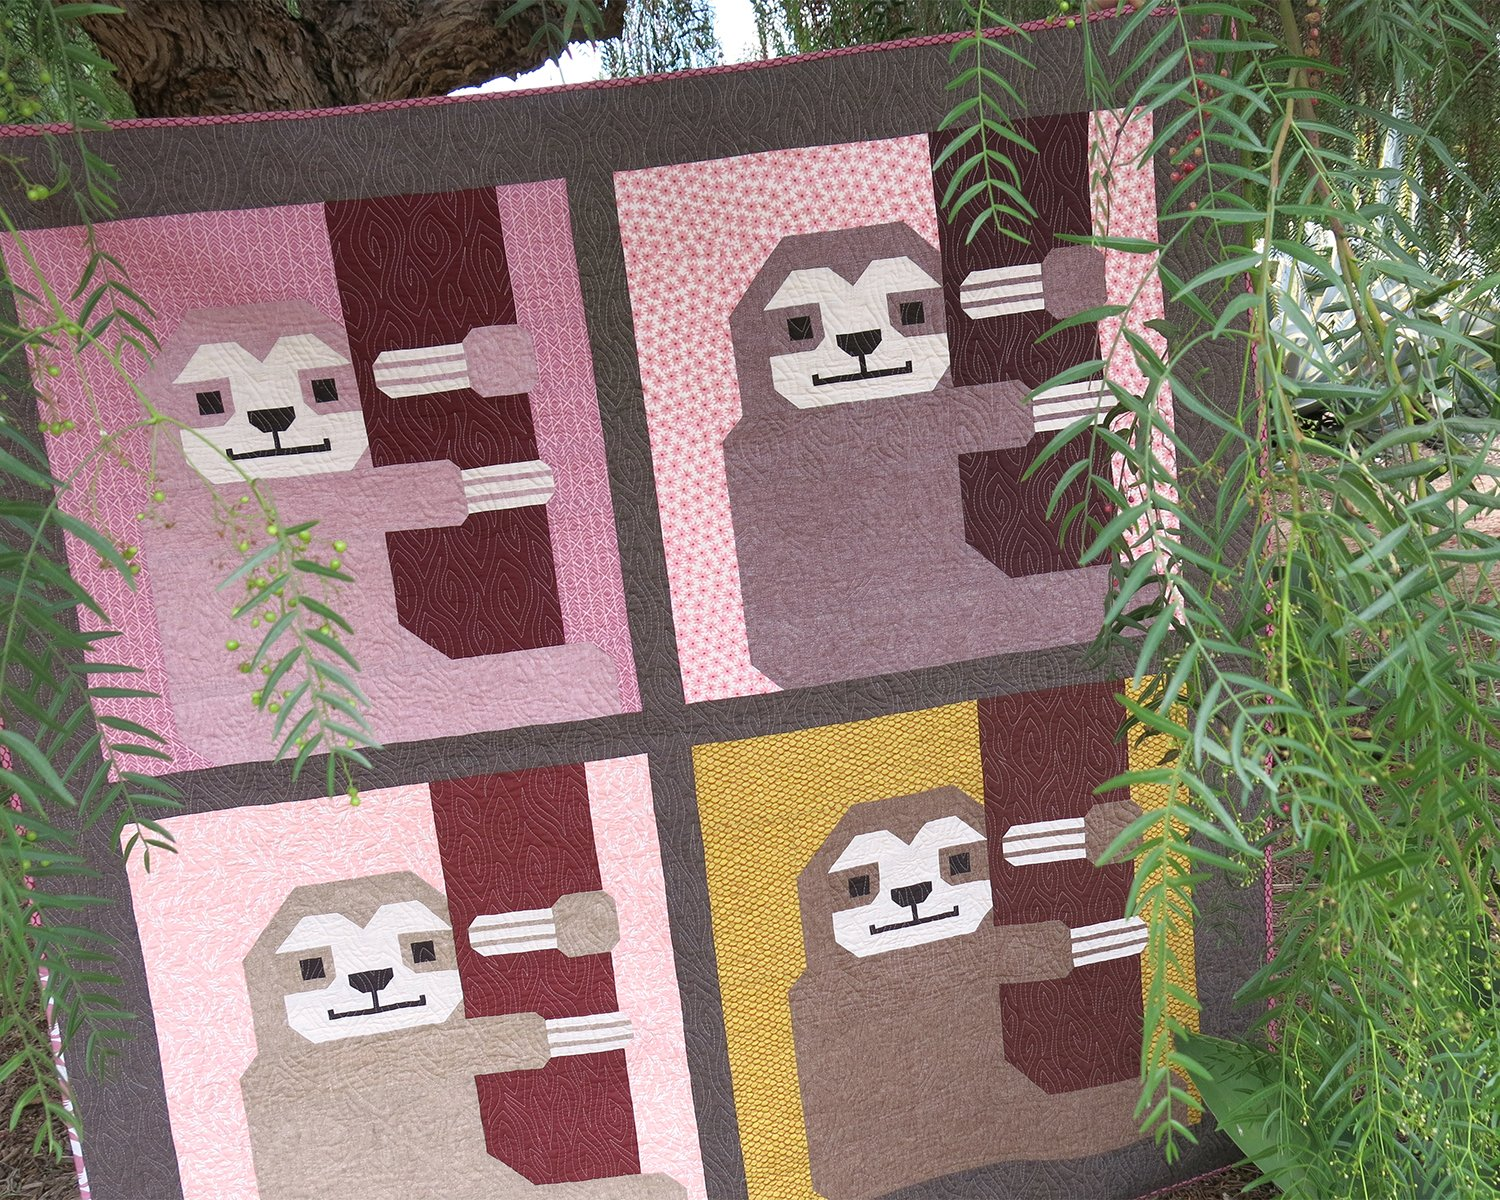 Sleepy Sloth Quilt and PIllow Patern Paper Pattern from Elizabeth Hartman #eh-033